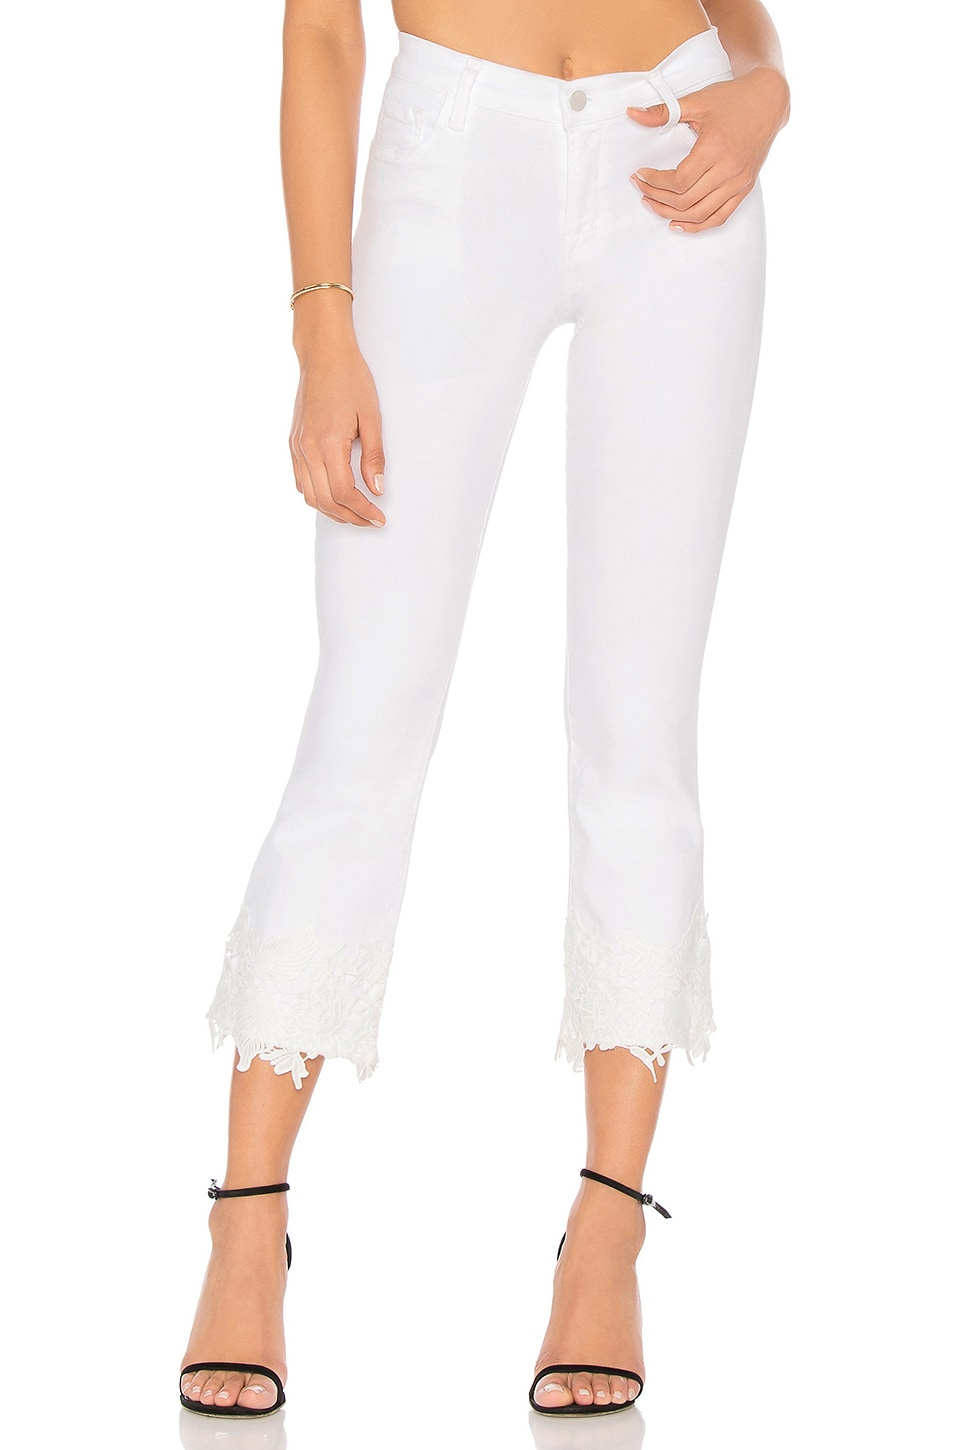 3880bbbc5d210 J Brand Selena Mid Rise Crop Boot in White Lace